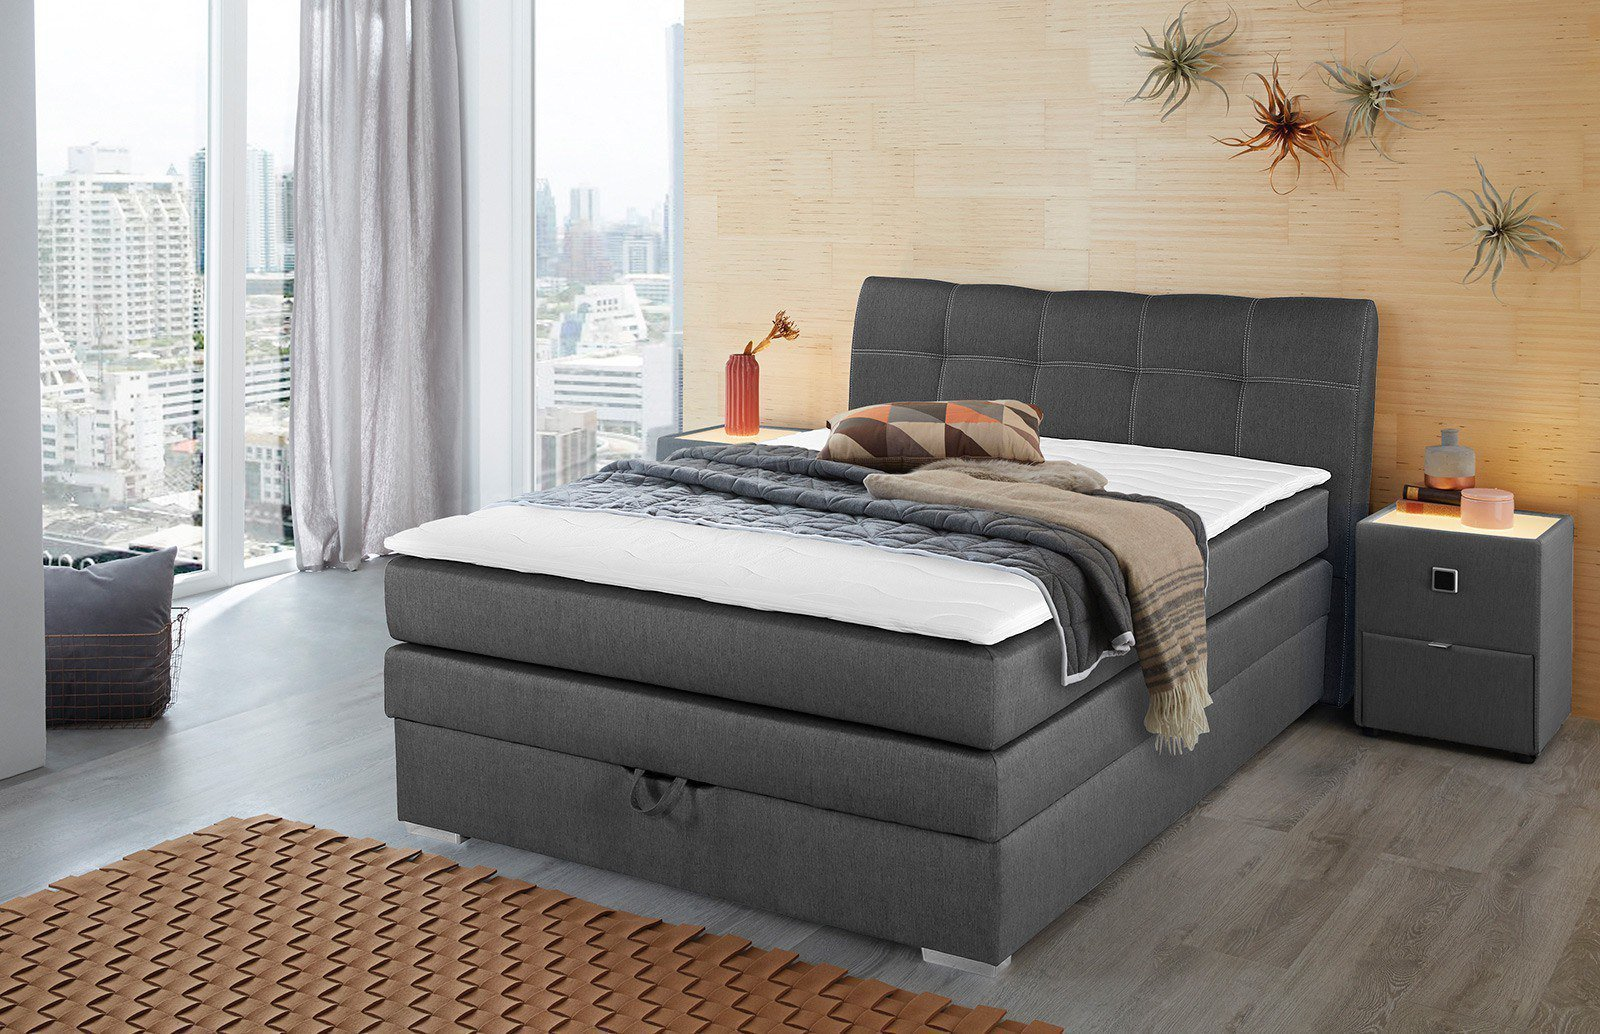 jockenh fer amelie boxspringbett in grau mit bettkasten. Black Bedroom Furniture Sets. Home Design Ideas